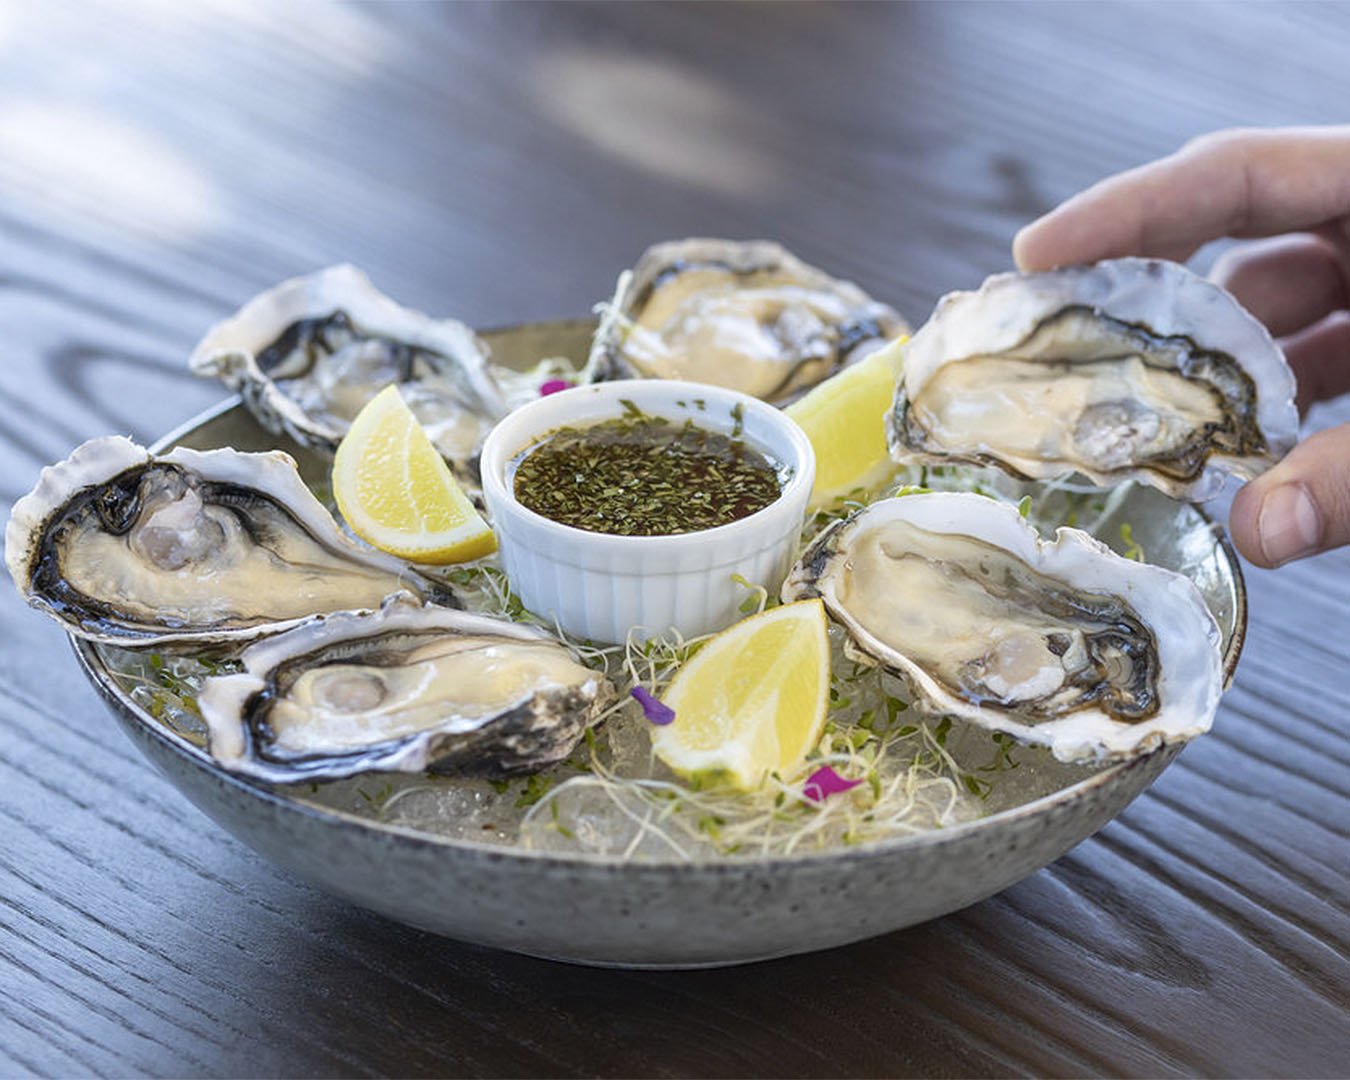 Oysters waiting to be devoured at Ma Maison.